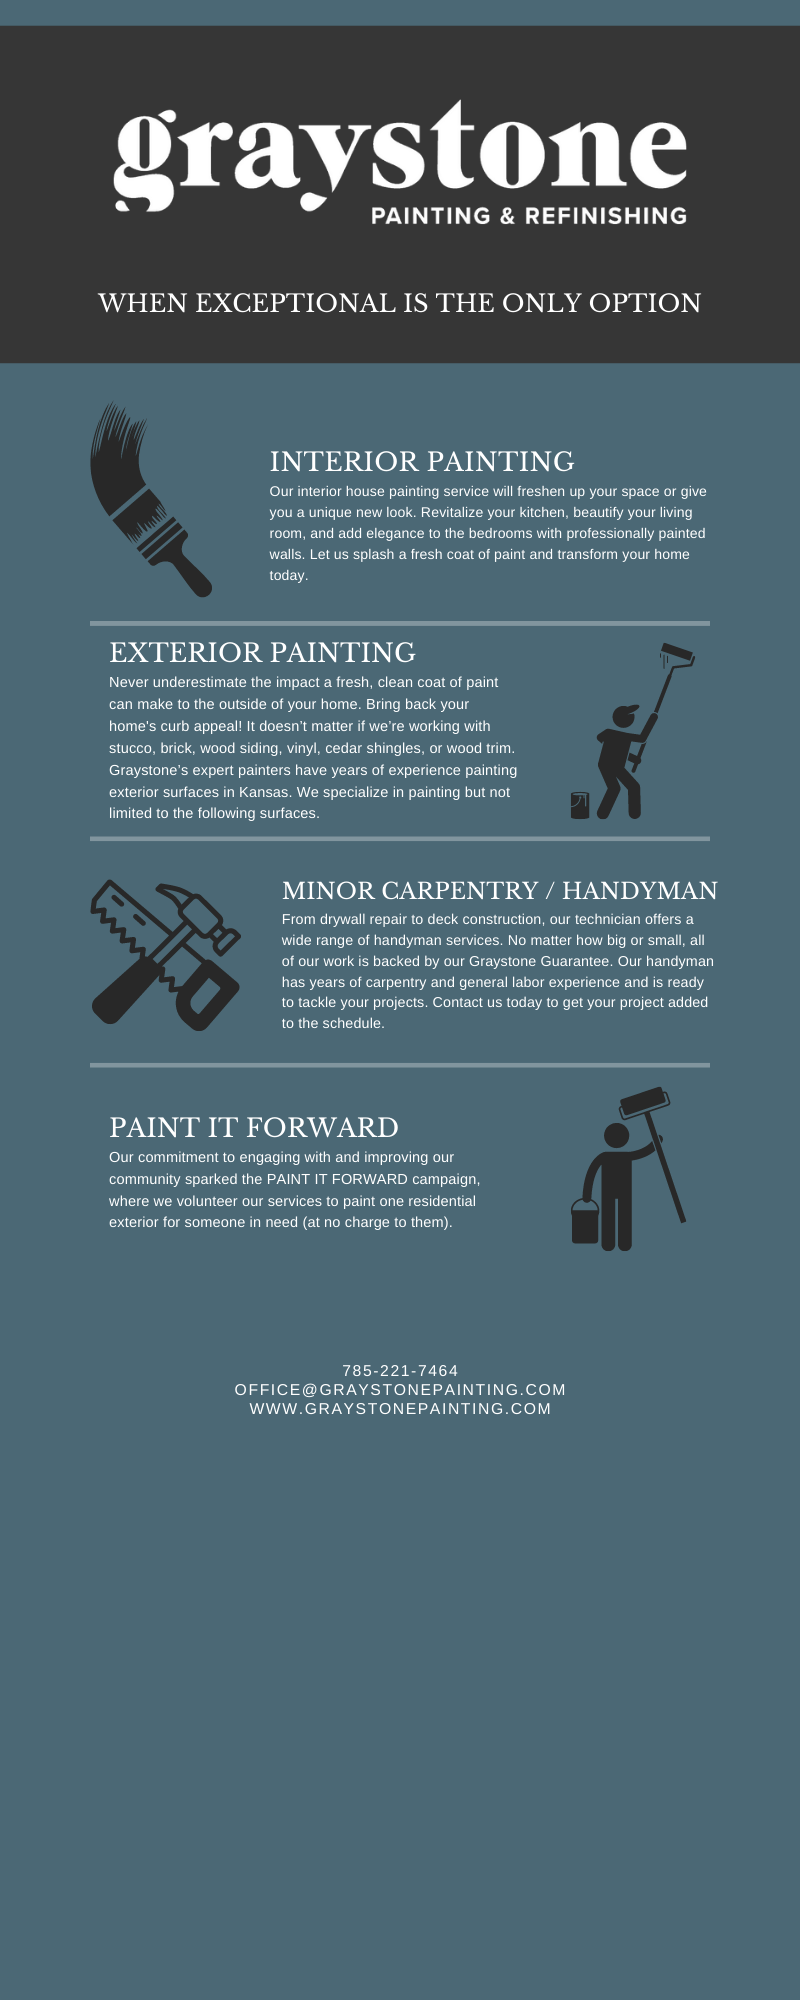 graystone Infographic May2021